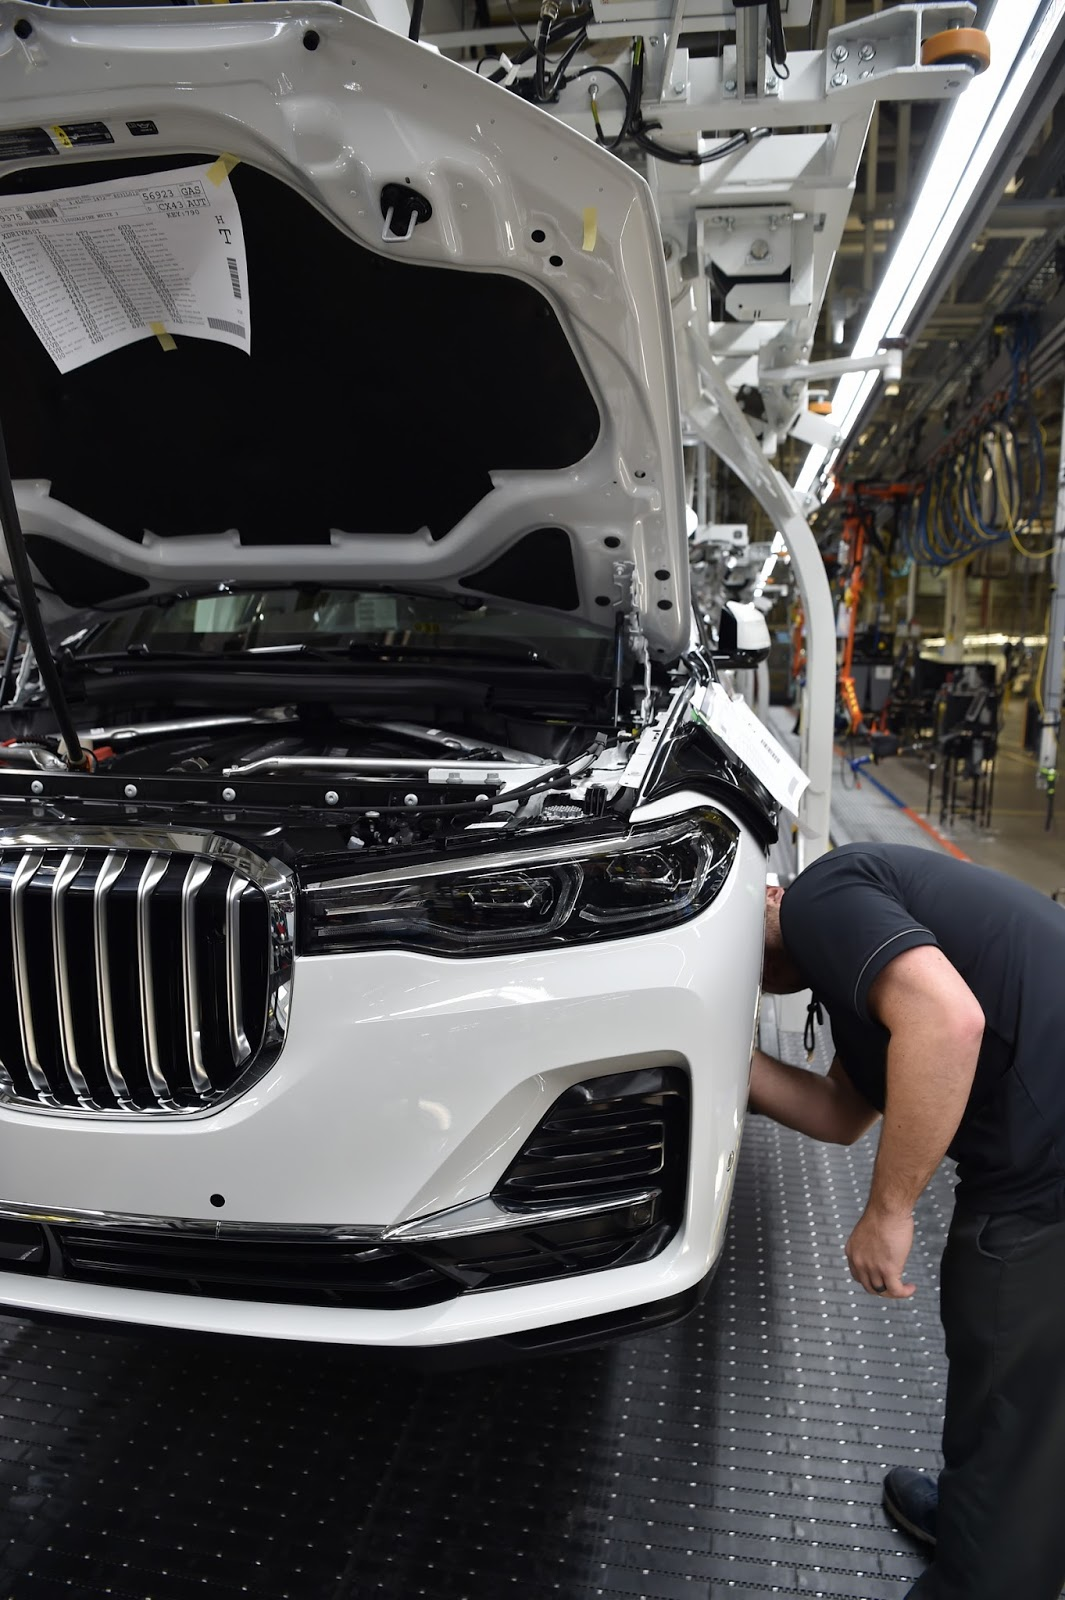 2019 Bmw X7 G07 Specs And Options Made Official By Vin